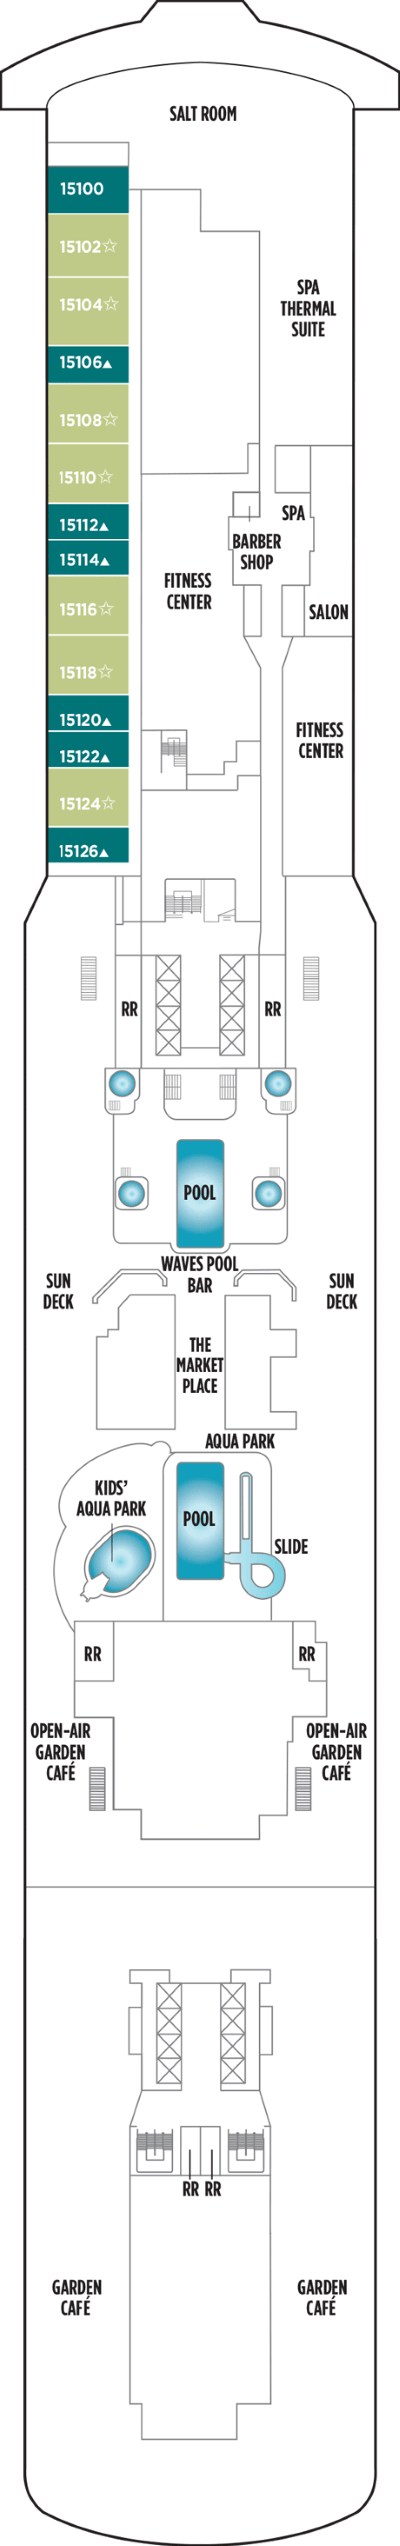 Norwegian Getaway Deck 15 layout